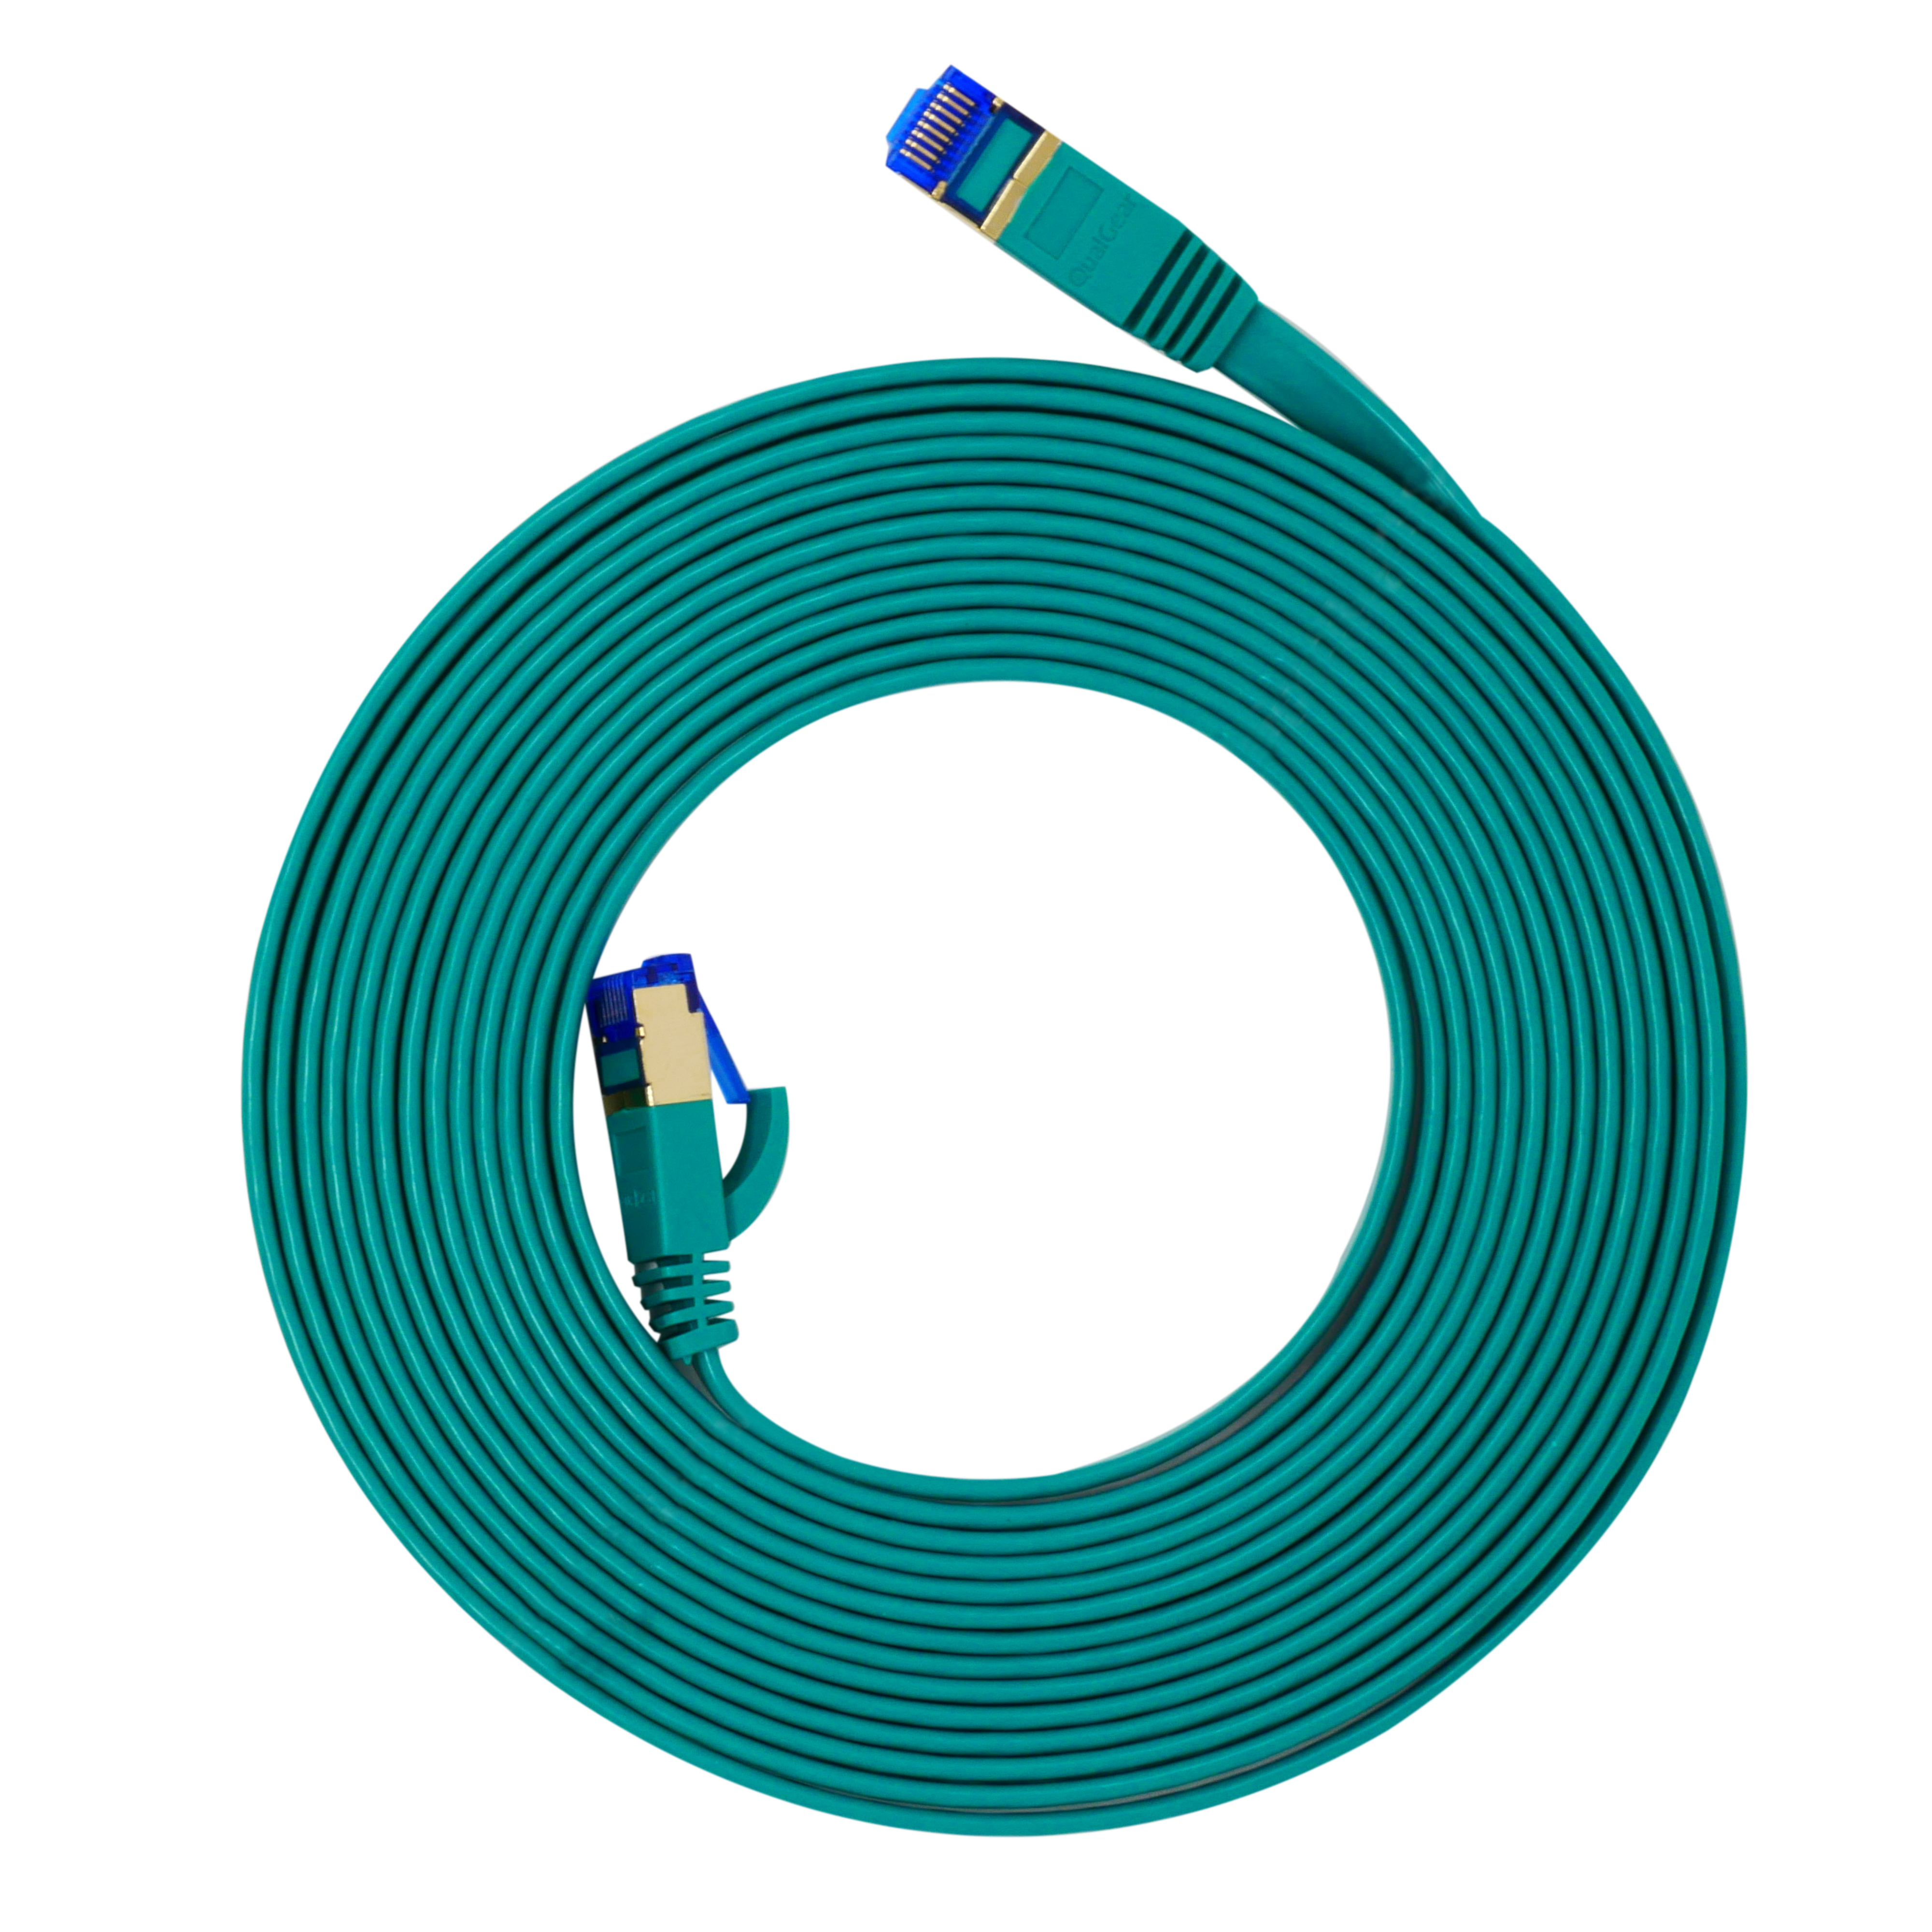 QualGear QG-CAT7F-15FT-GRN CAT 7 S/FTP Ethernet Cable Length 15 feet - 26 AWG, 10 Gbps, Gold Plated Contacts, RJ45, 99.99% OFC Copper, Color Green